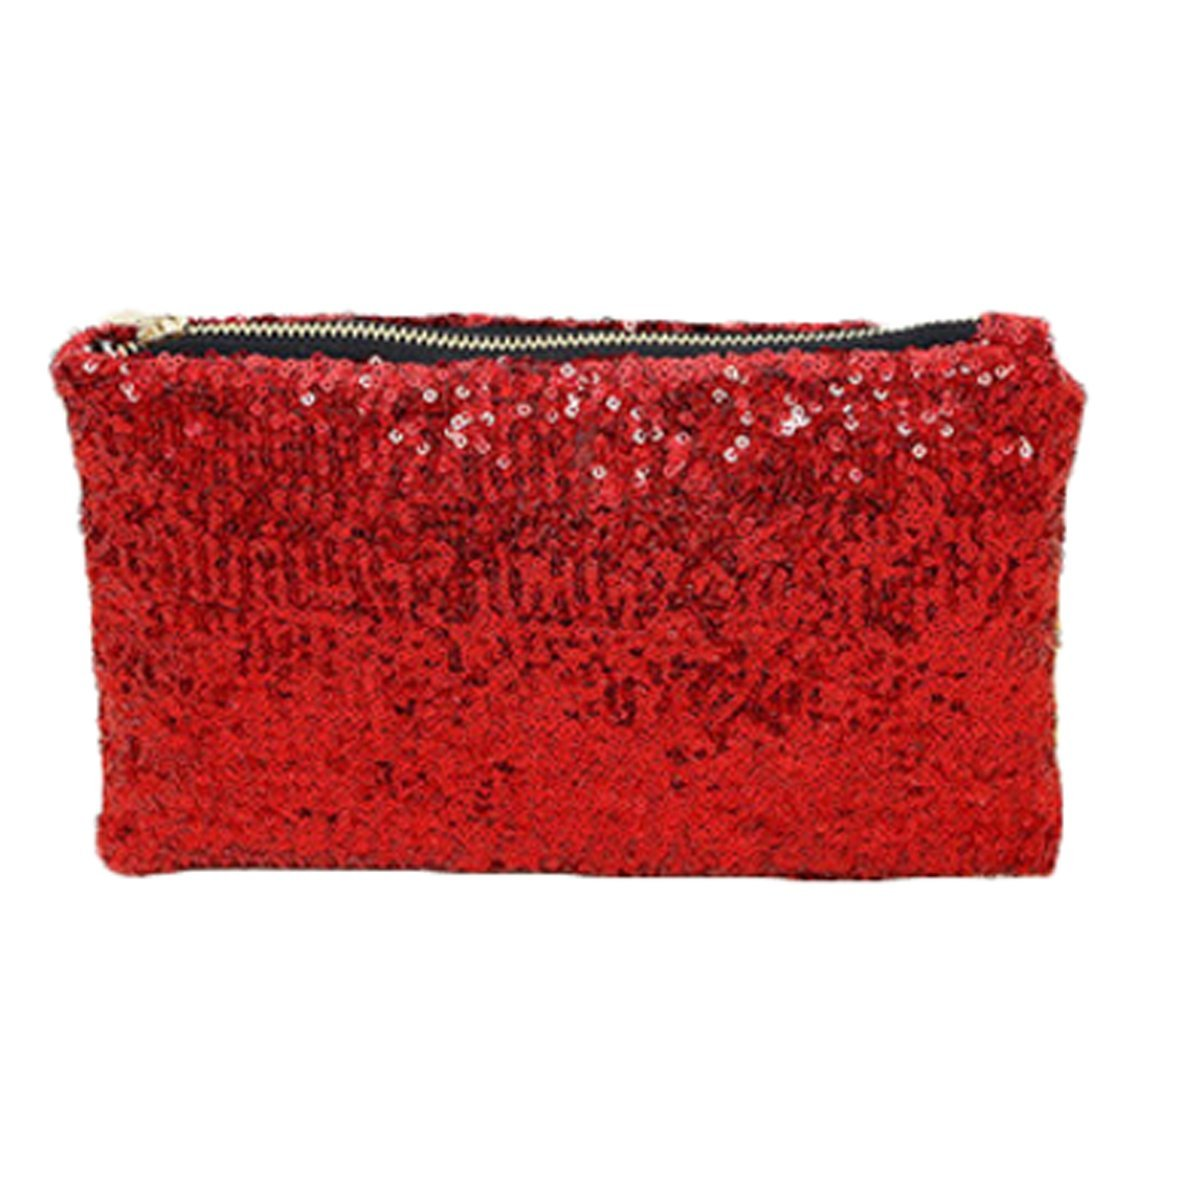 Women Fashion Sequins Shiny Cosmetic Pouch Bag Wallet Card Coin Phone Holder Handbags (Purple)